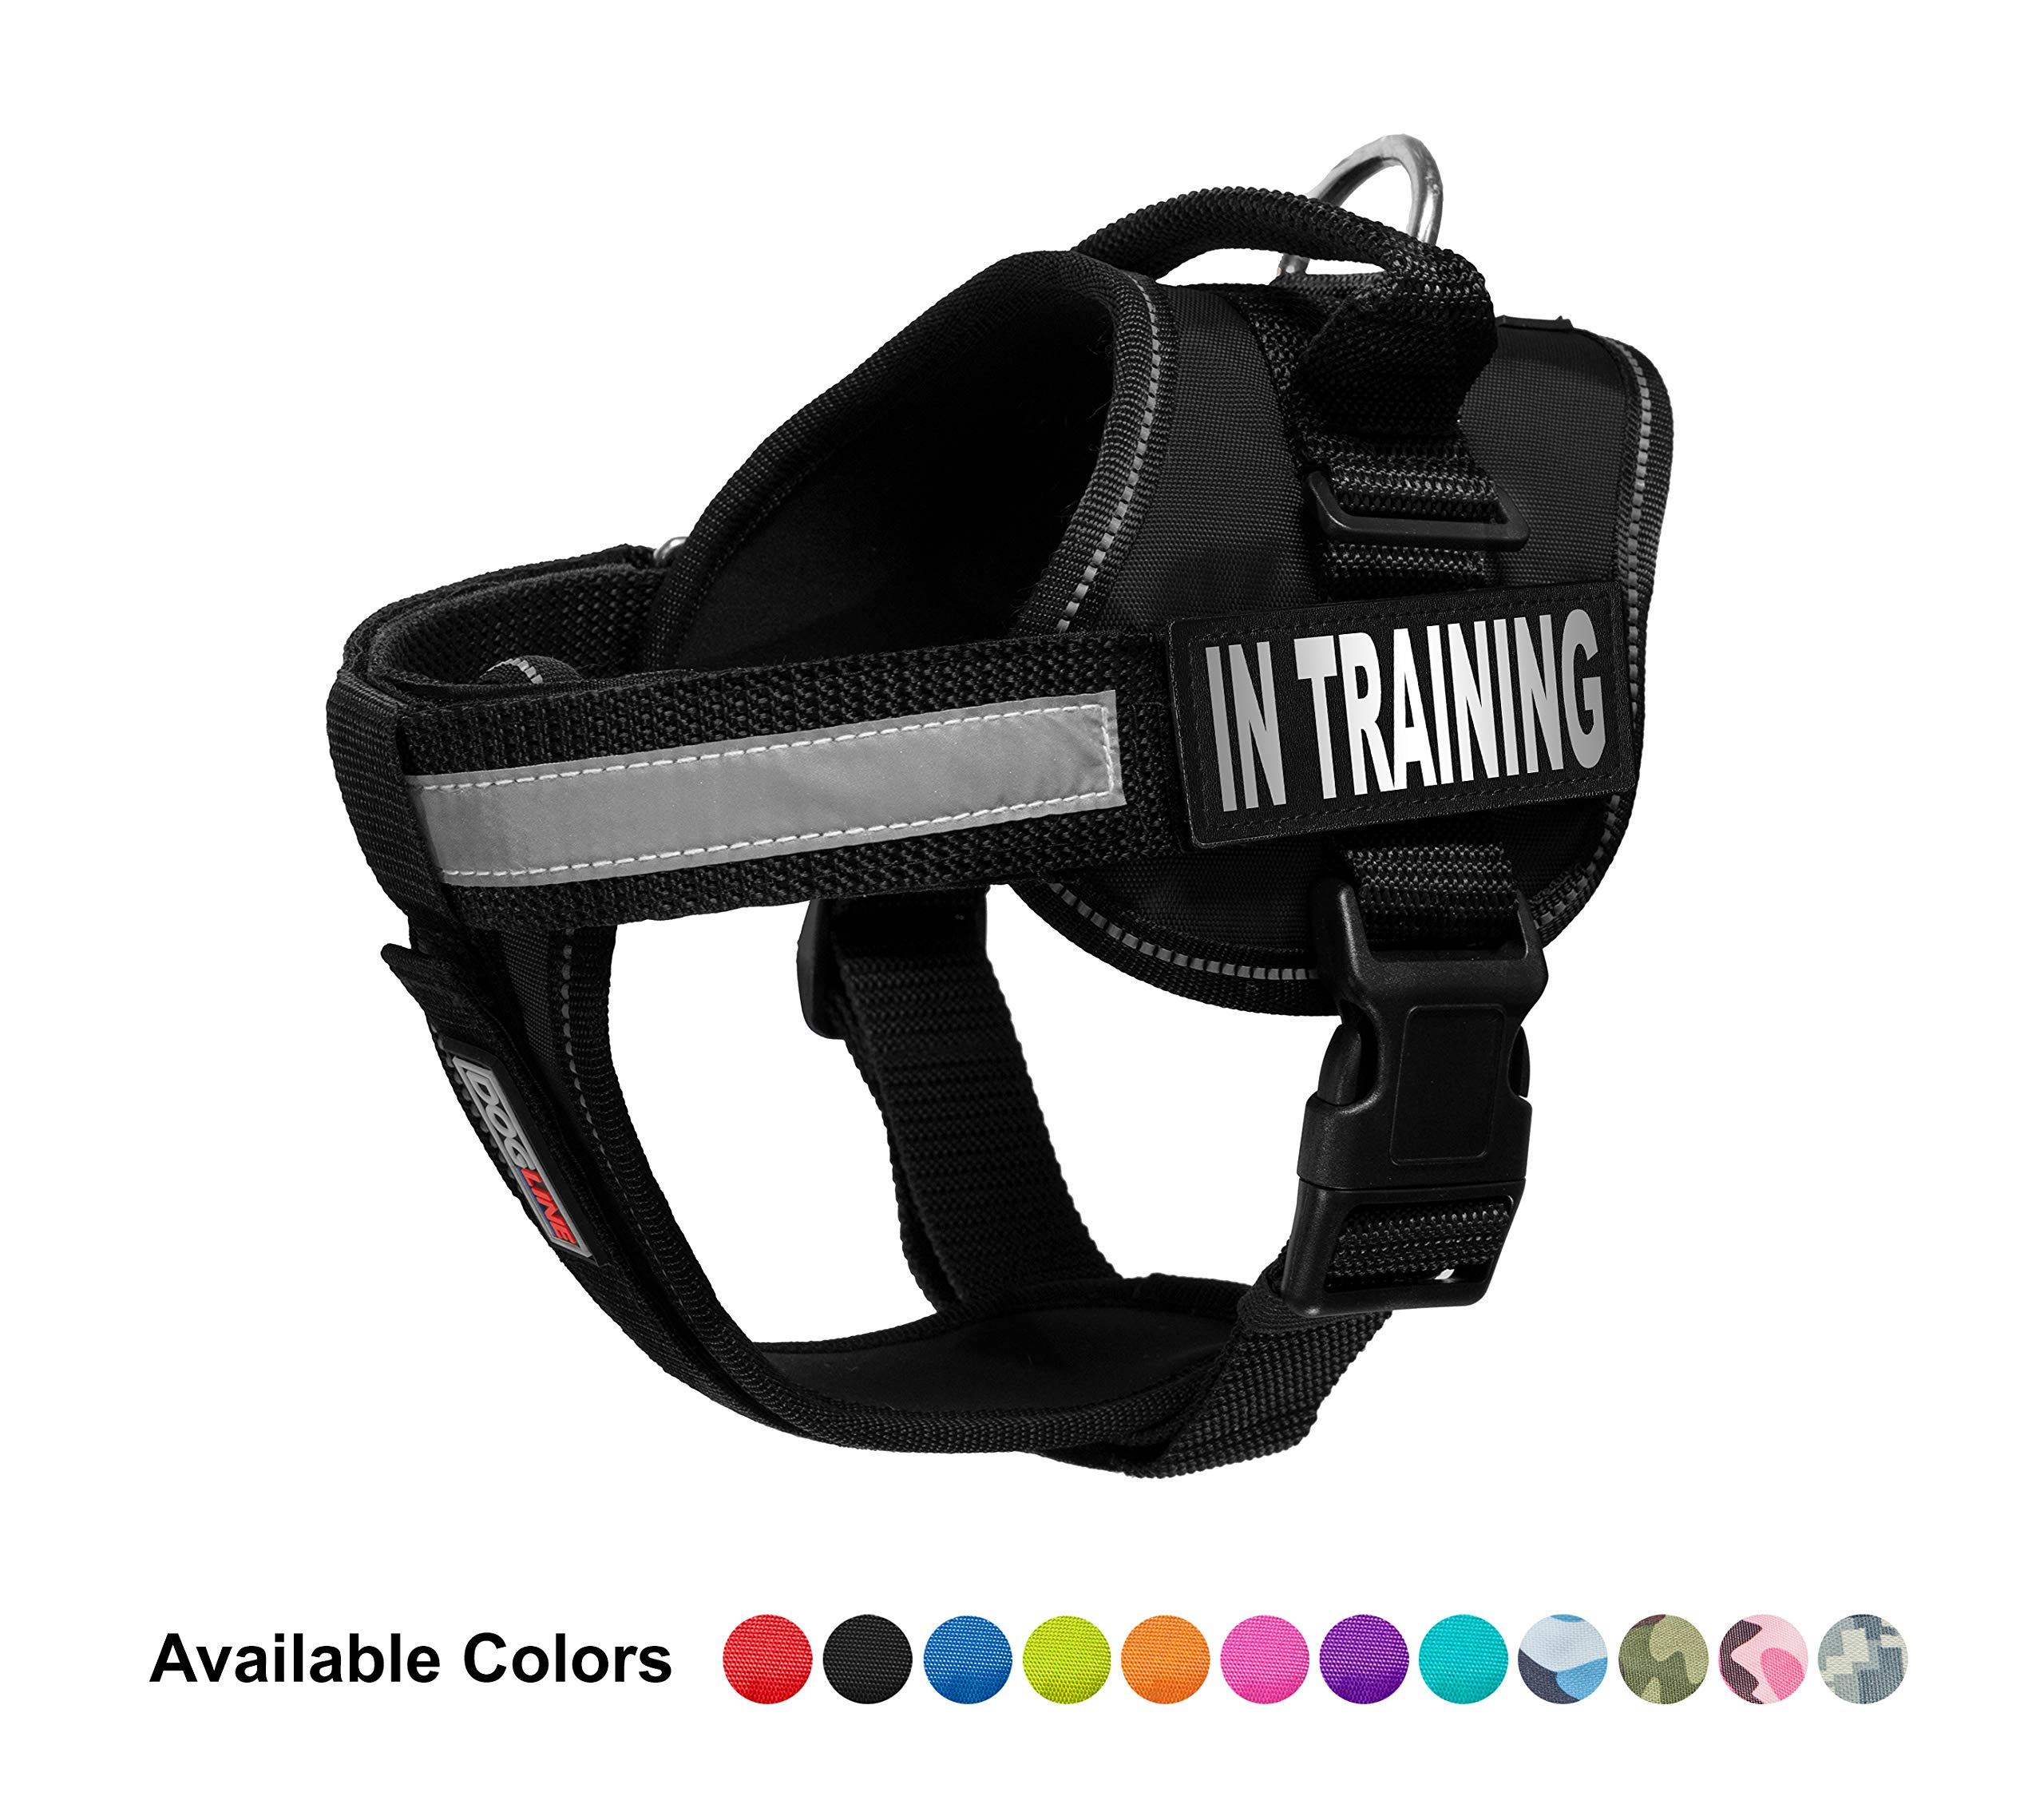 Dogline Vest Harness for Dogs and 2 Removable in Training Patches, X-Large/36 to 46'', Black